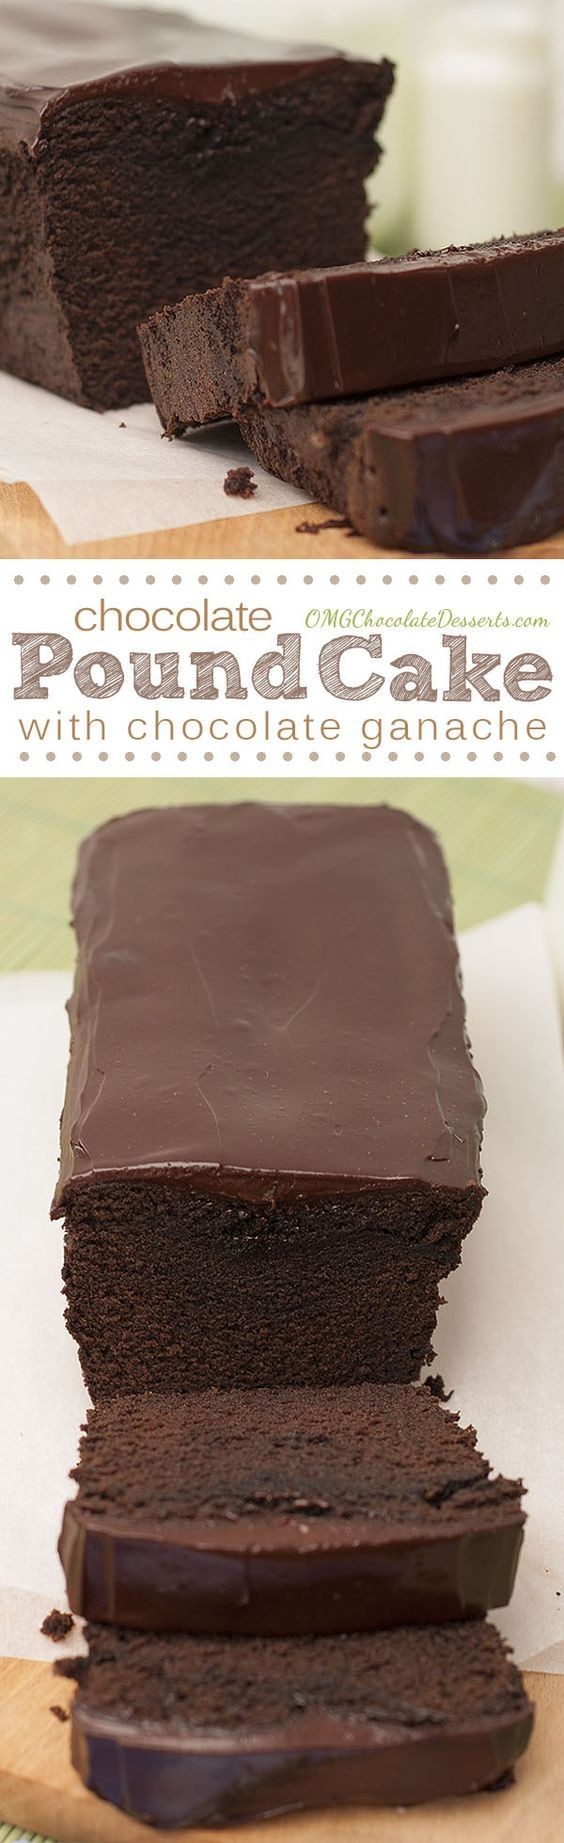 Chocolate Pound Cake Loaf with Chocolate Ganache Recipe via OMG Chocolate Desserts ... this recipe is rich, delicious and perfectly moist- a chocolate lover's dream! #dessertbreads #neighborgifts #homemadegifts #foodgifts #breadrecipes #flavoredbreads #sweetbreads #holidaybread #bread #homemadebread #simplebreadrecipes #simplebread #simplerecipes